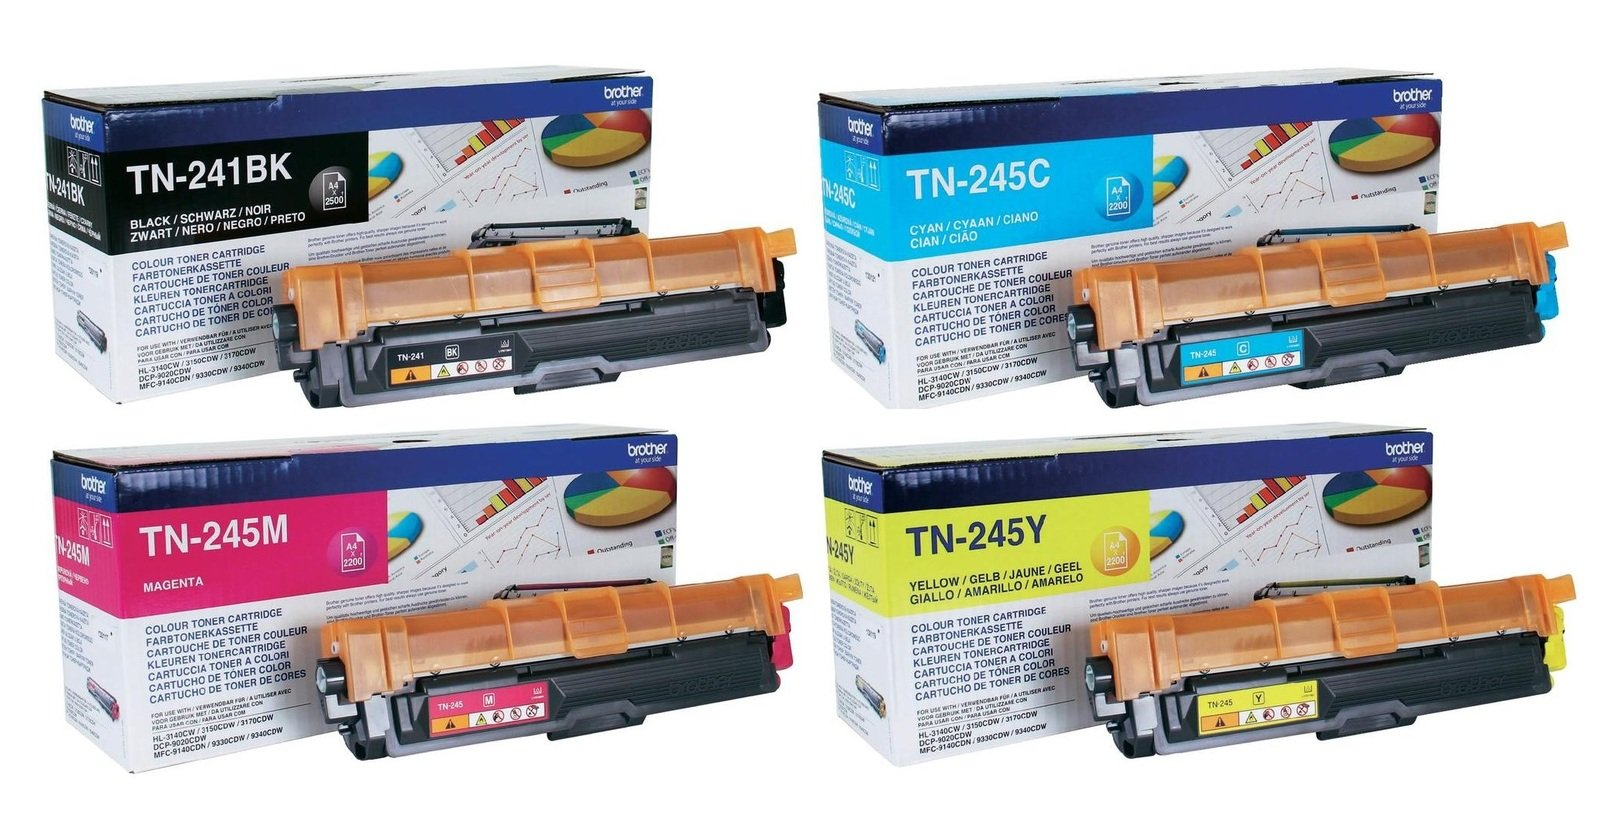 Genuine 4 Colour Brother TN-241 & TN-245 Toner Cartridge Multipack (TN-241BK/TN-245C/TN-245M/TN-245Y)